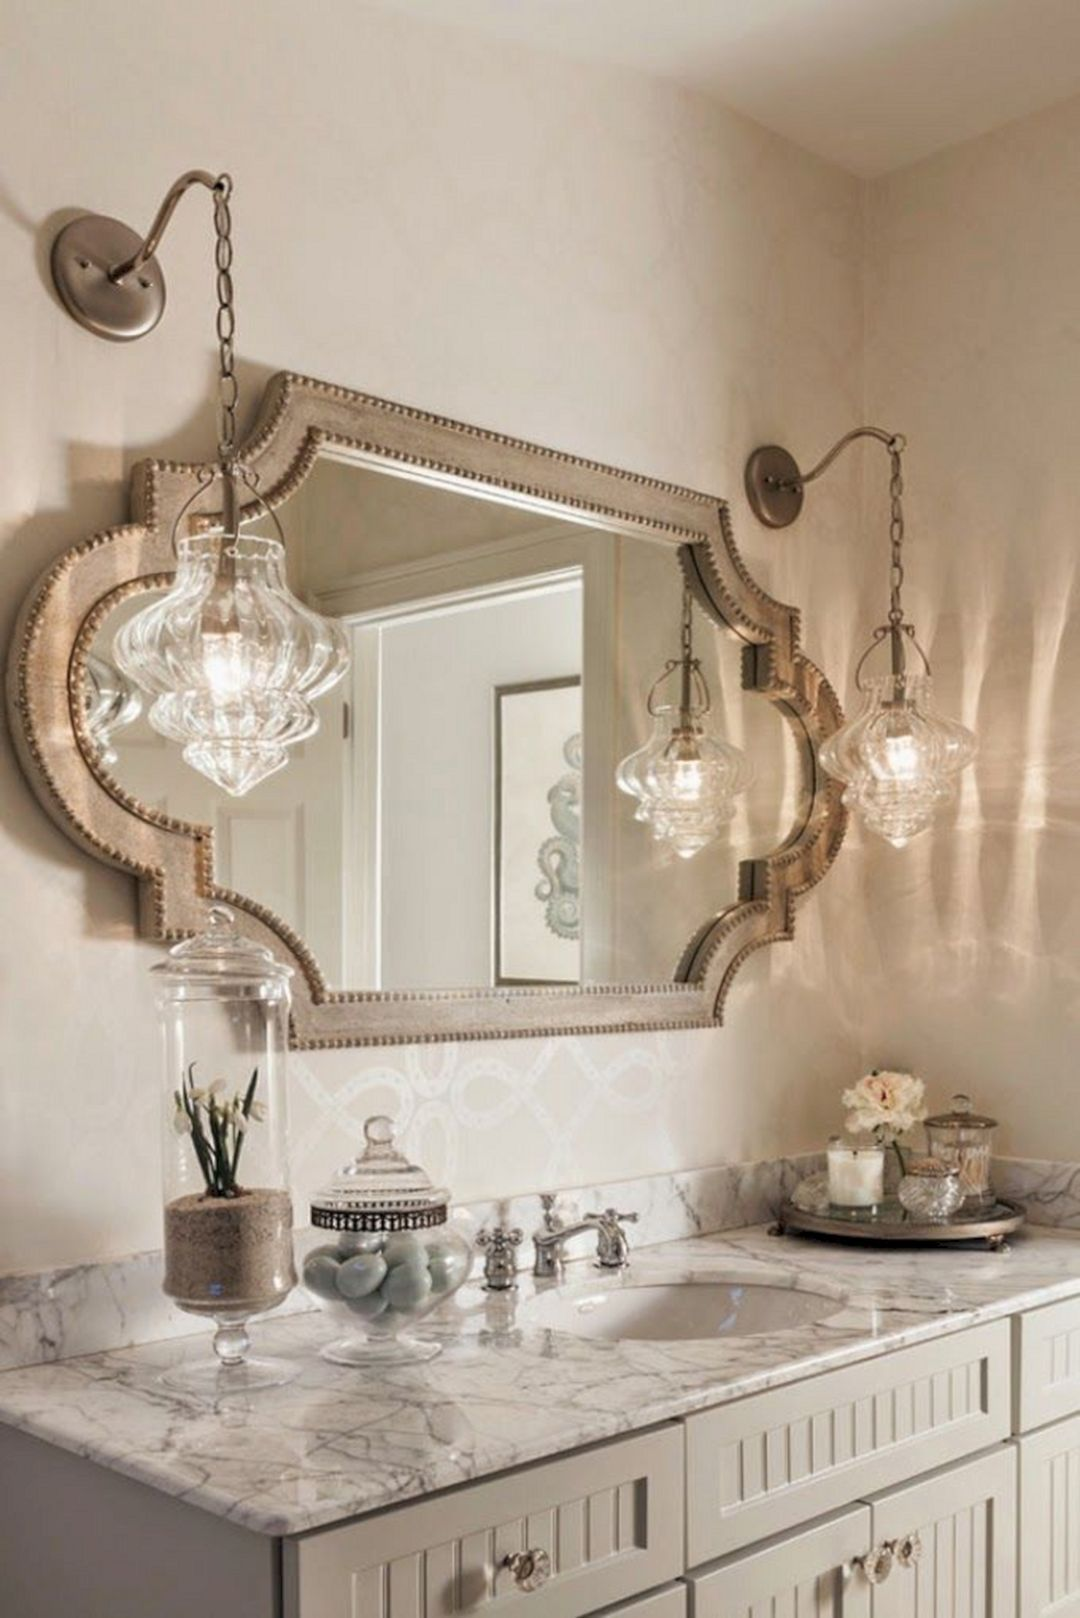 Best Ideas French Country Style Home Designs 3 Best Ideas French Country Style Home Designs 3 Design Ideas And Photos House Of Turquoise French Country Bathroom Silver Bathroom